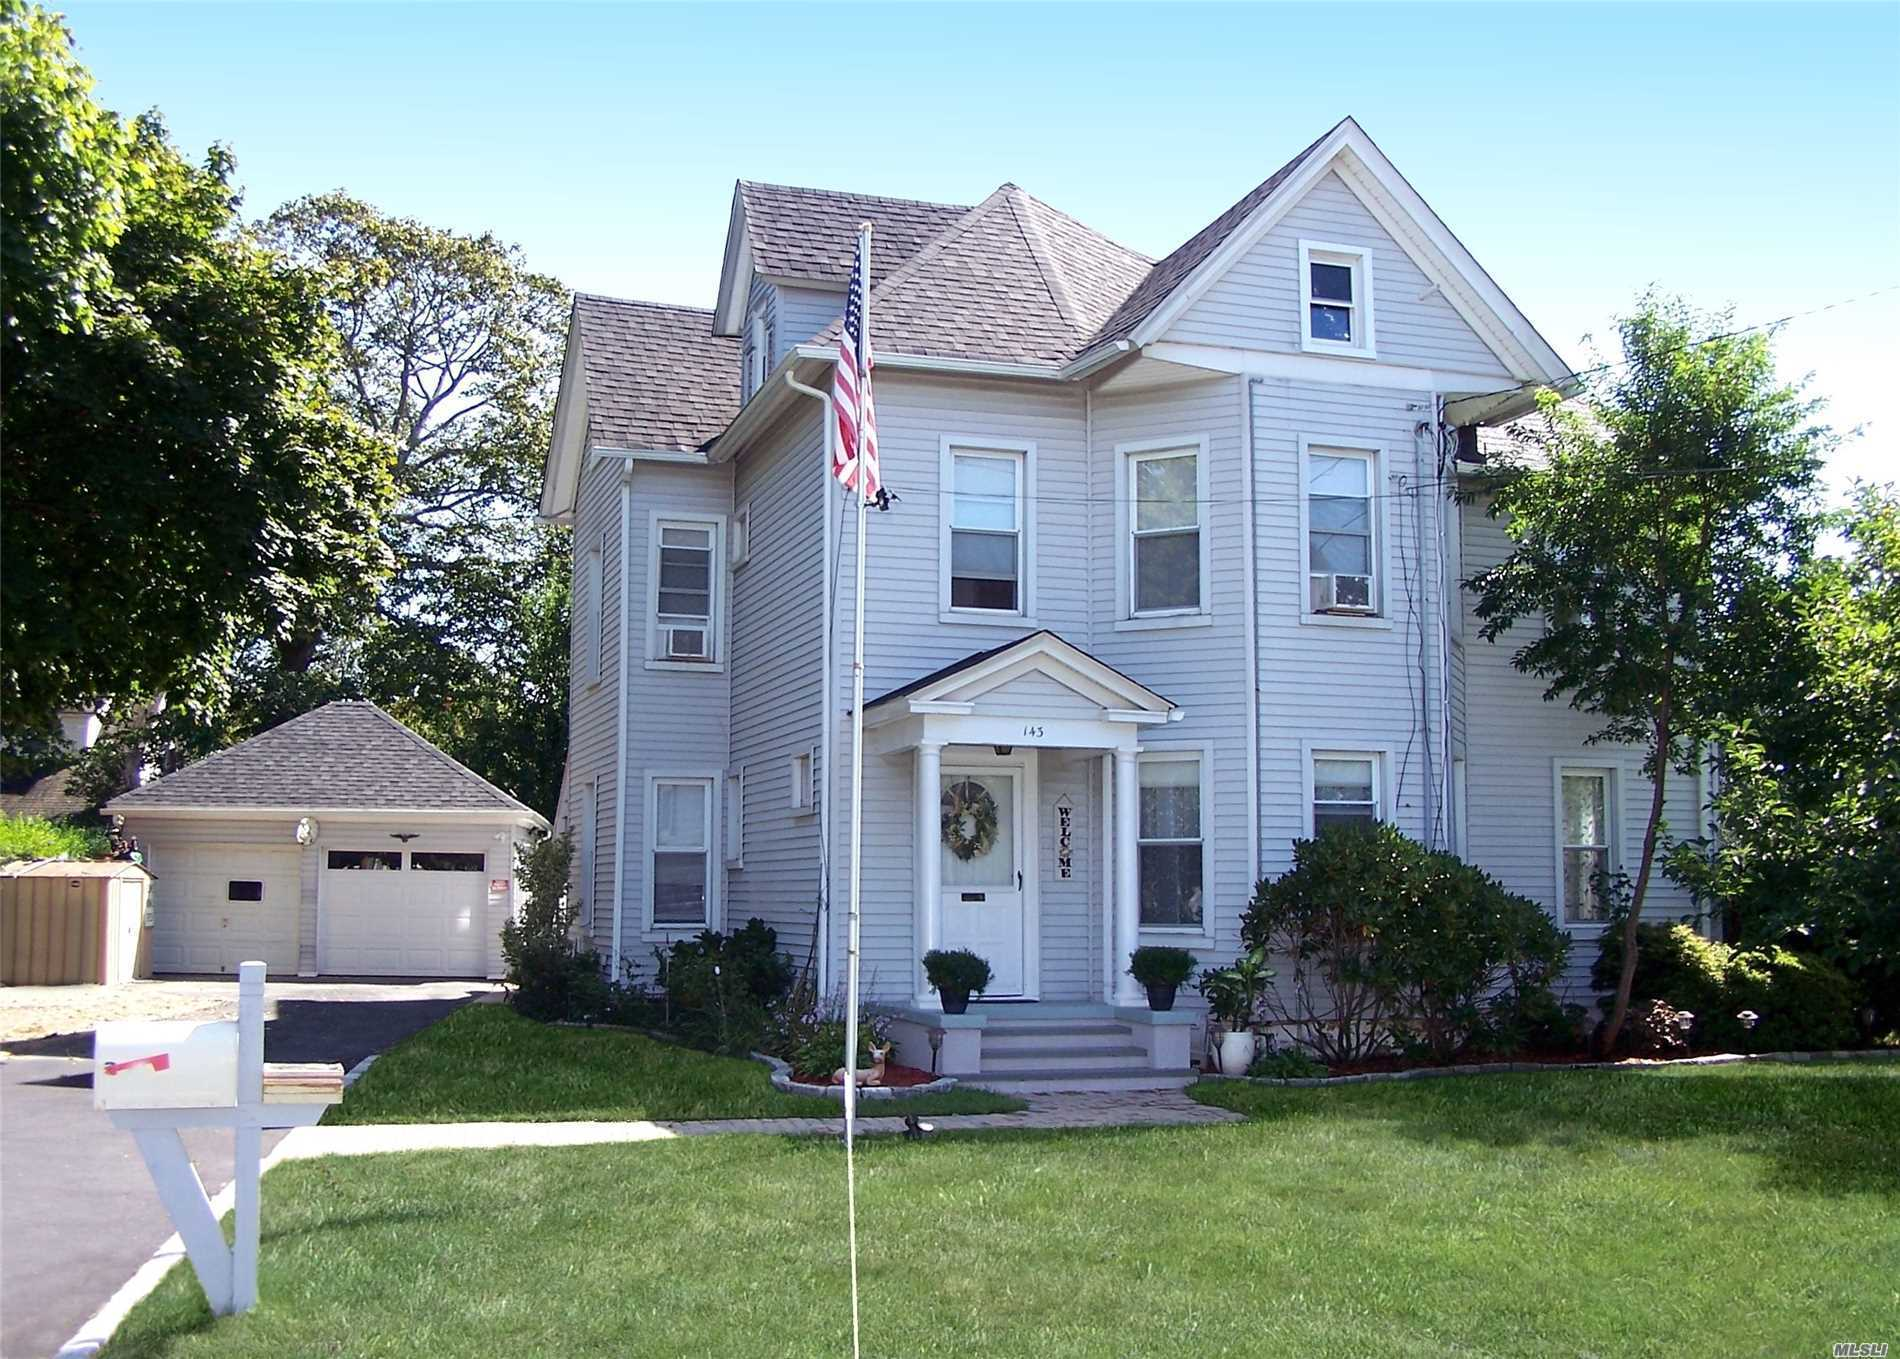 Experience An Exquisite Property In Heart Of Patchogue Vill. Grandfathered In As 2 Family W/Owner Occ. This Meticulously Kept 2.5 Story Home Exudes Charm Of Yesteryear Yet Has All Modern Day Conveniences. Feat Inc. A New Eik W/Stainless Appl, Formal Dr Currently Set Up As Conservatory & 3 Bdrms On Main Flr. 2nd Floor Is A 3 Bdrm Apt & 3rd Flr Set Up As Guest Quarters.With The Solar Heated Saltwater Pool, Deck & Landscaping Enjoy An Endless Vacation.The Oversized Garage Is A Craftman's Dream!!!